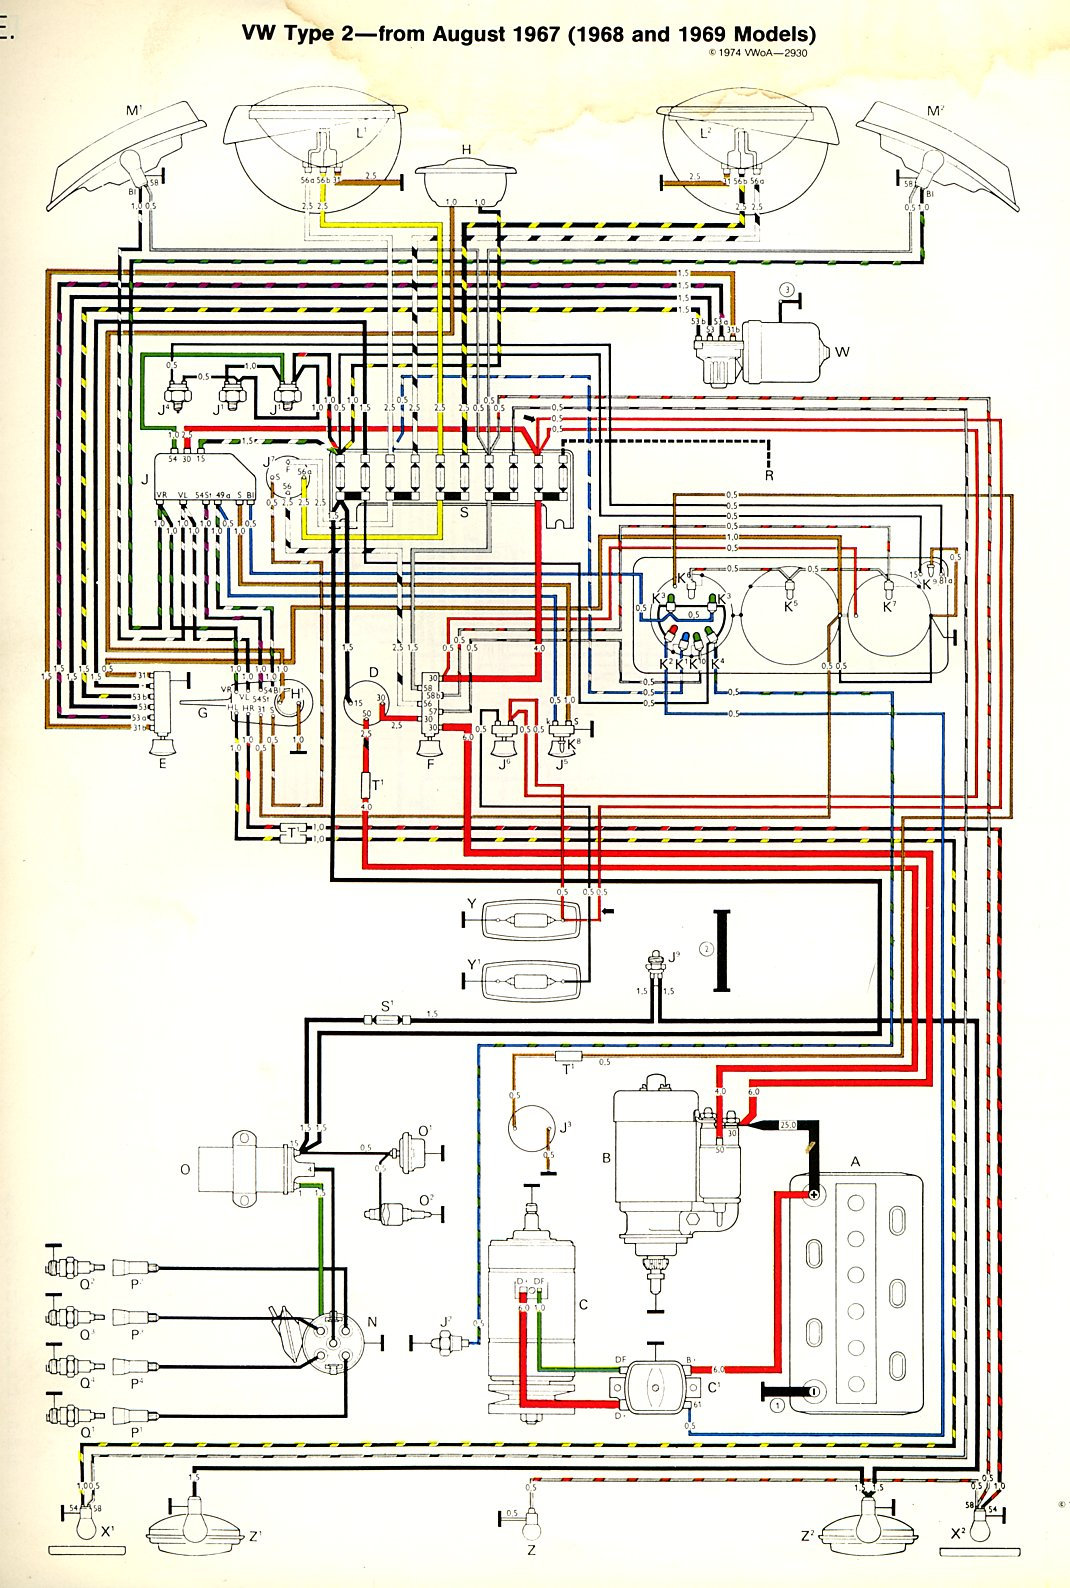 hight resolution of thesamba com type 2 wiring diagrams 1974 vw bus wiring diagram vw bus wiring diagrams